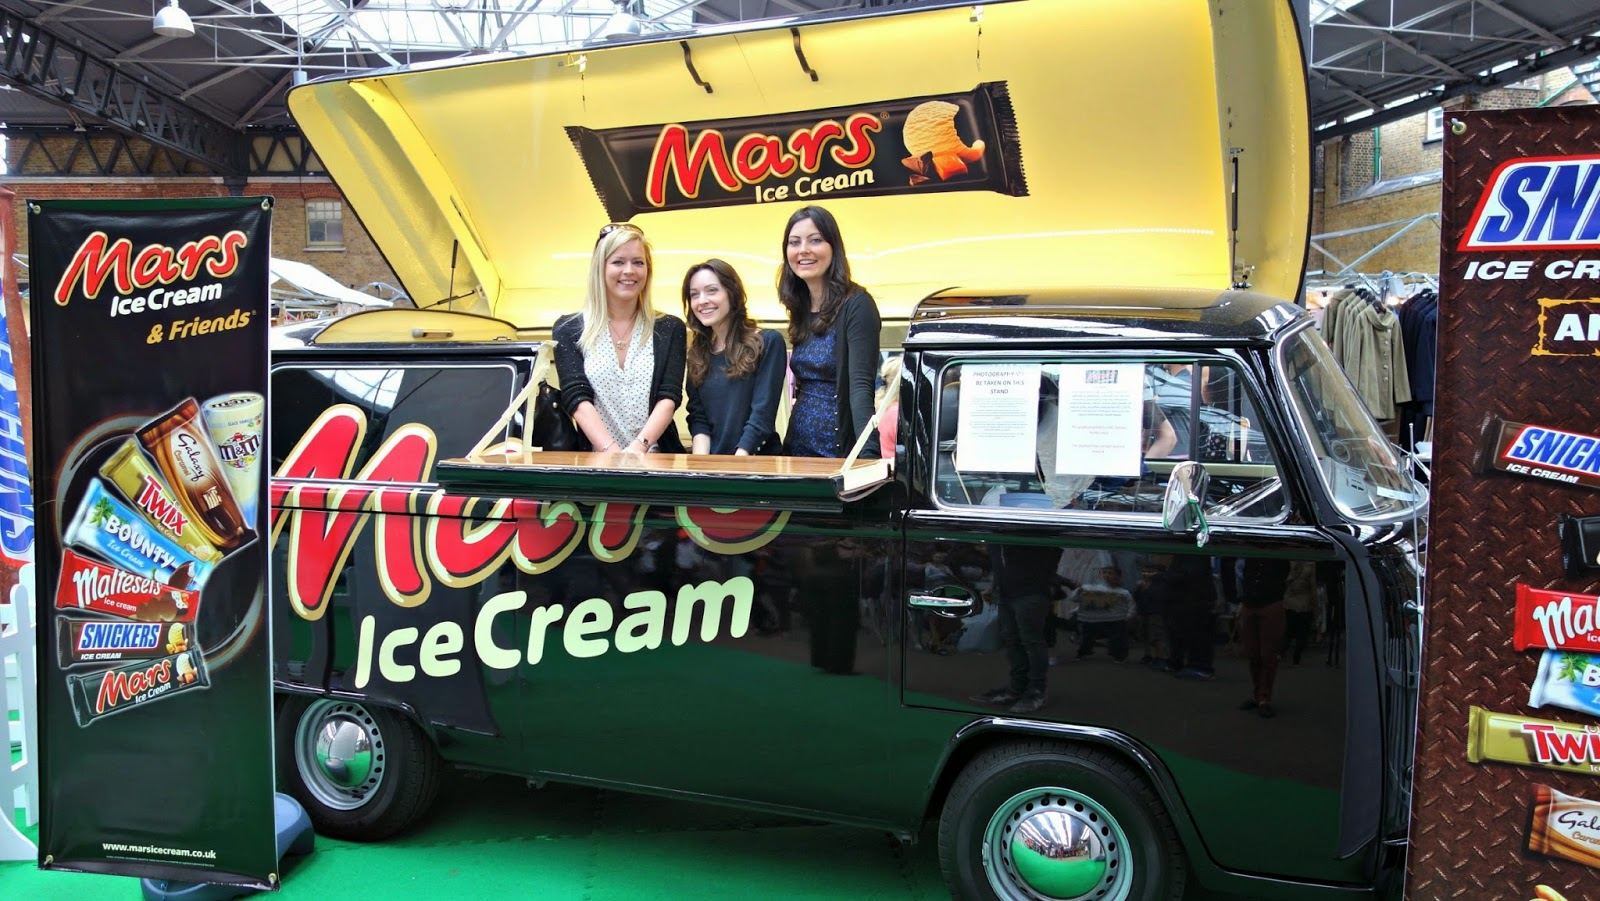 Mars Free Ice Cream Spitalfields London